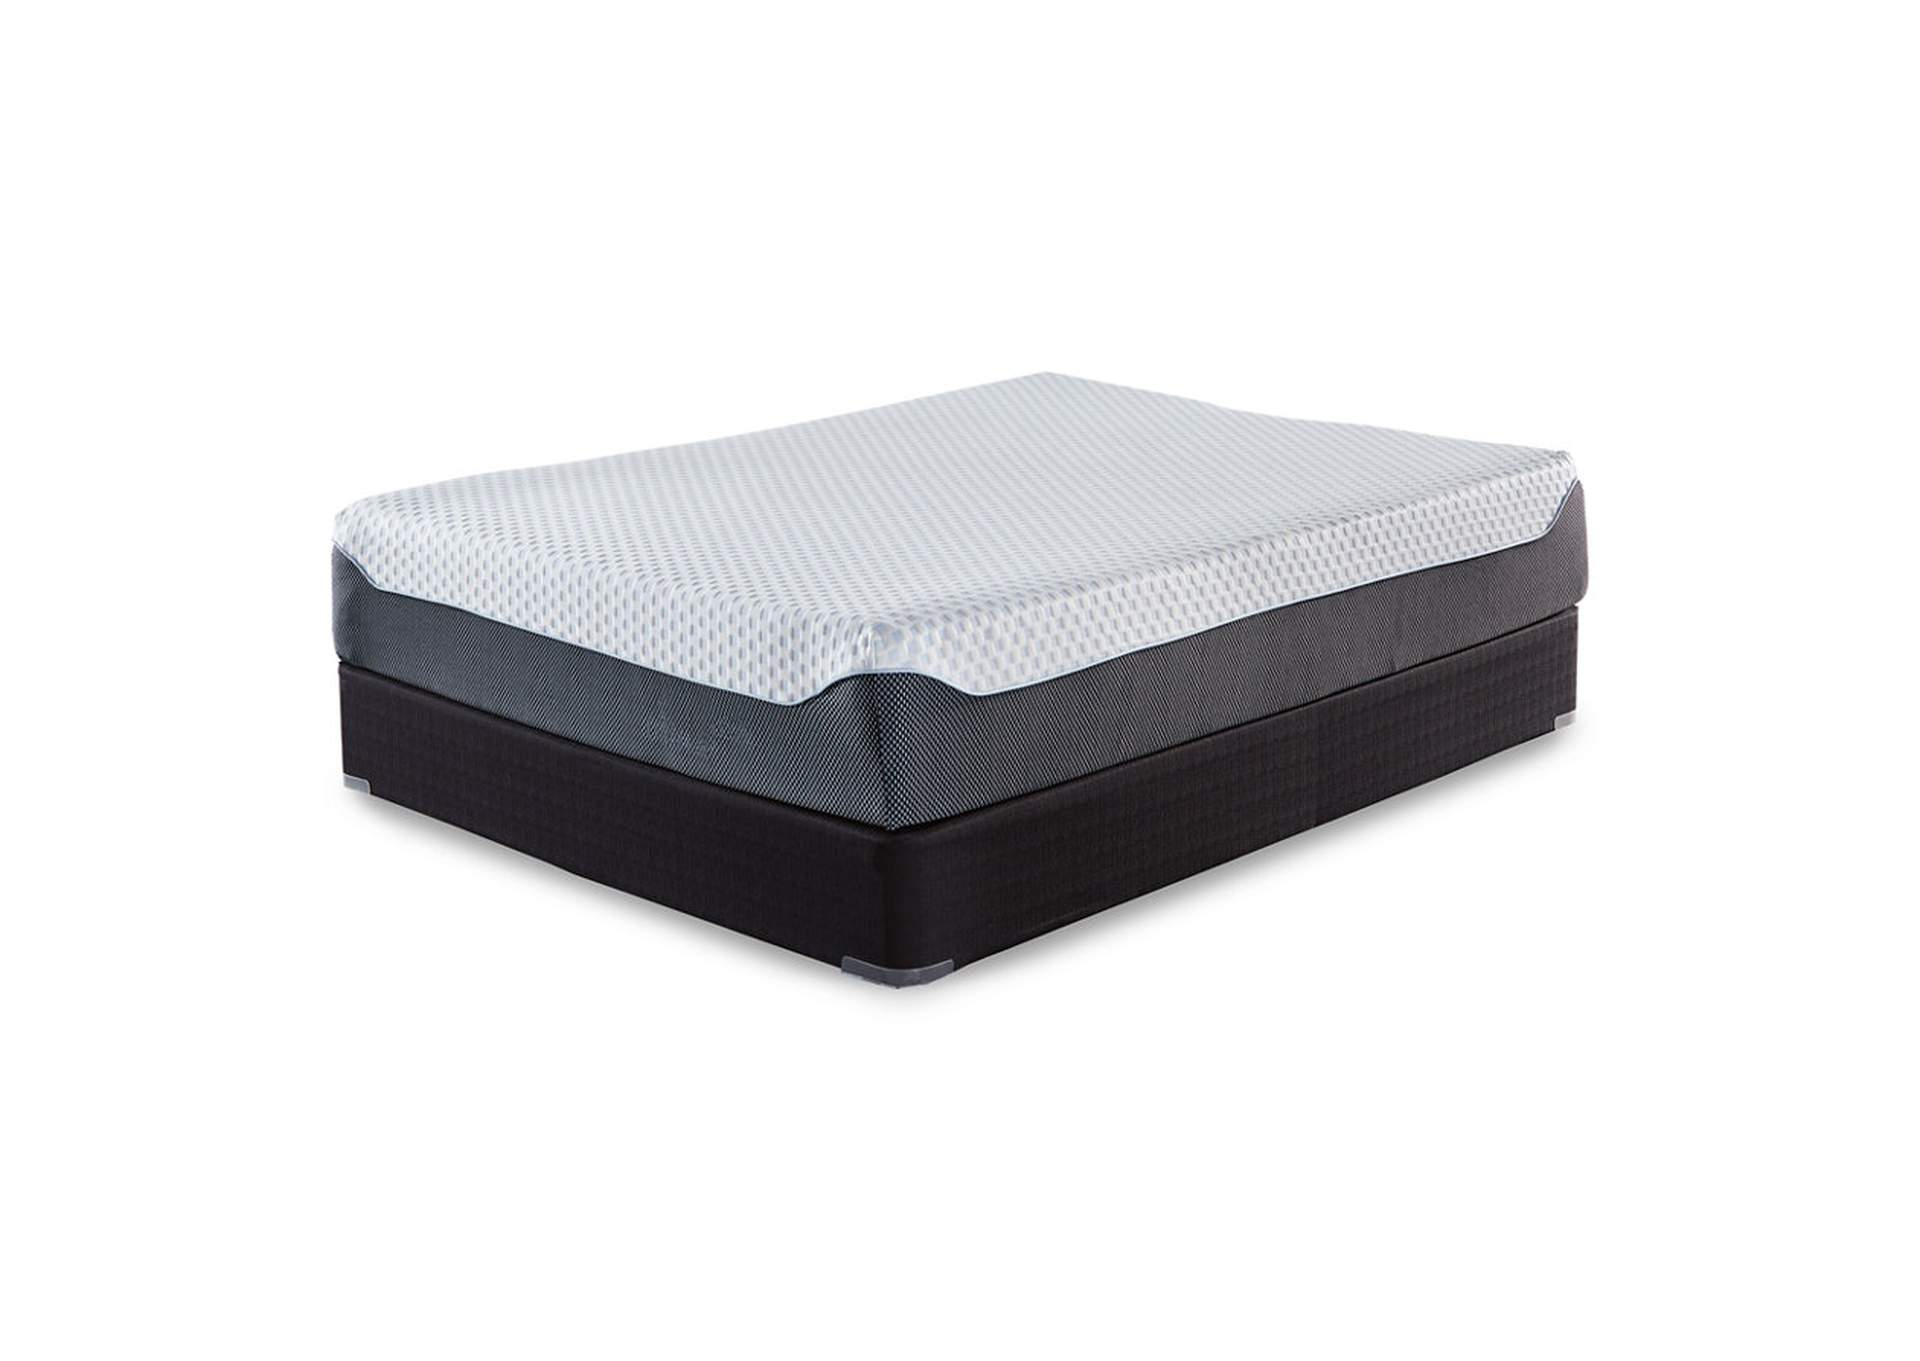 12 Inch Chime Elite Memory Foam Queen Mattress w/Foundation,Sierra Sleep by Ashley